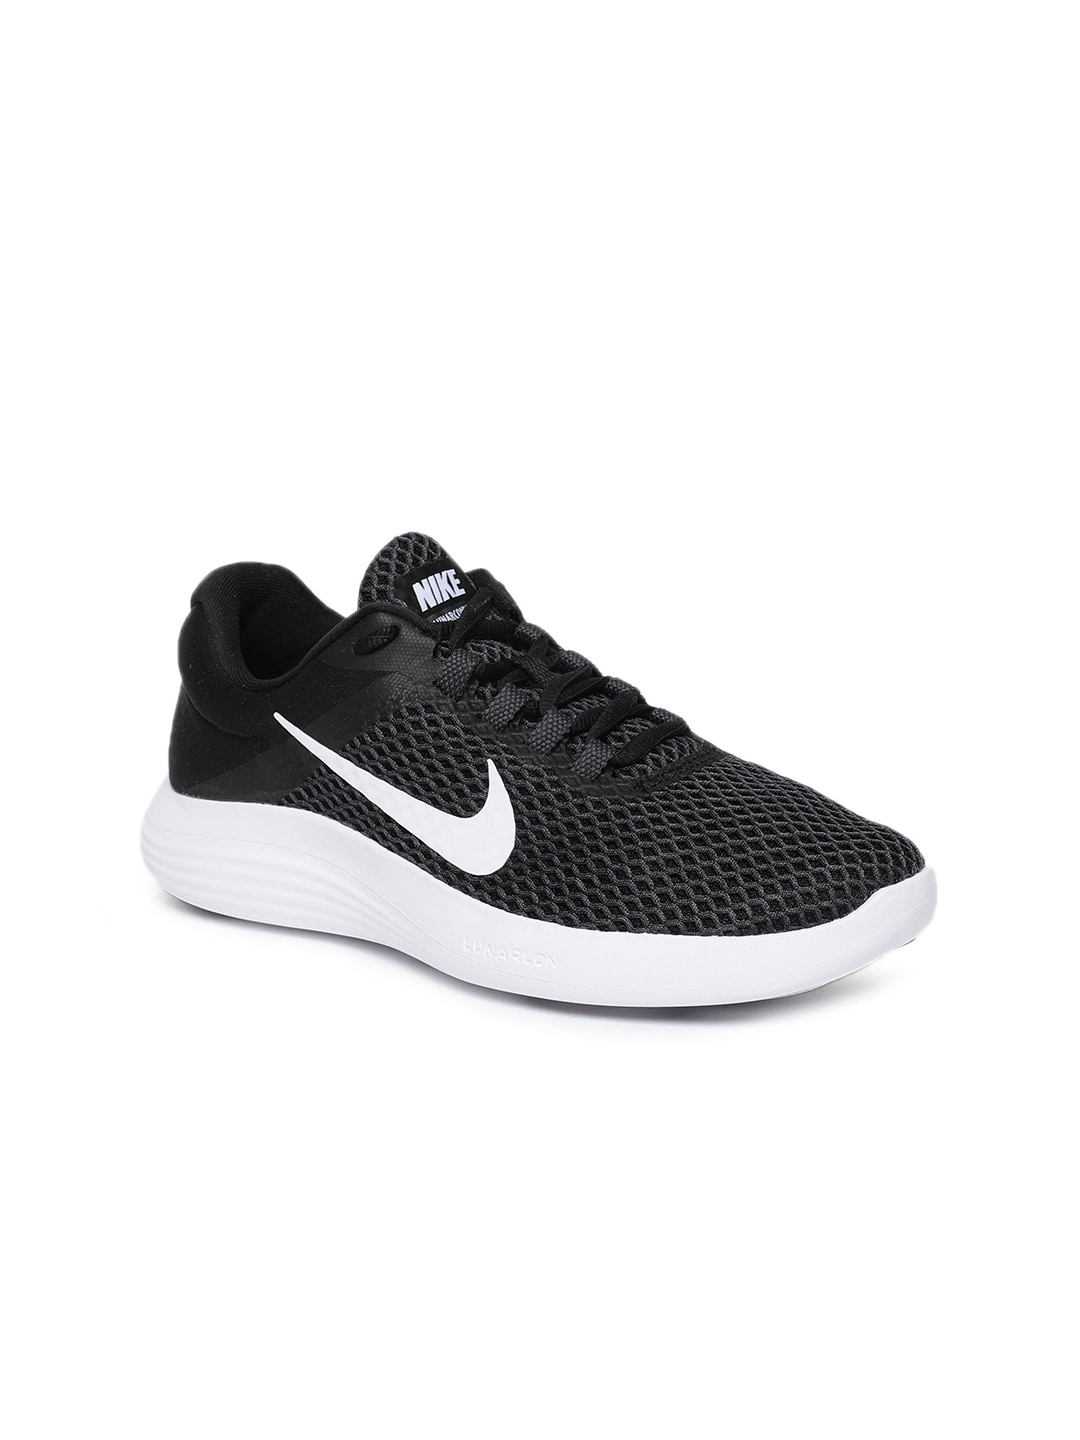 3e0d2c2c7f88a4 Nike Shoes - Buy Nike Shoes for Men   Women Online